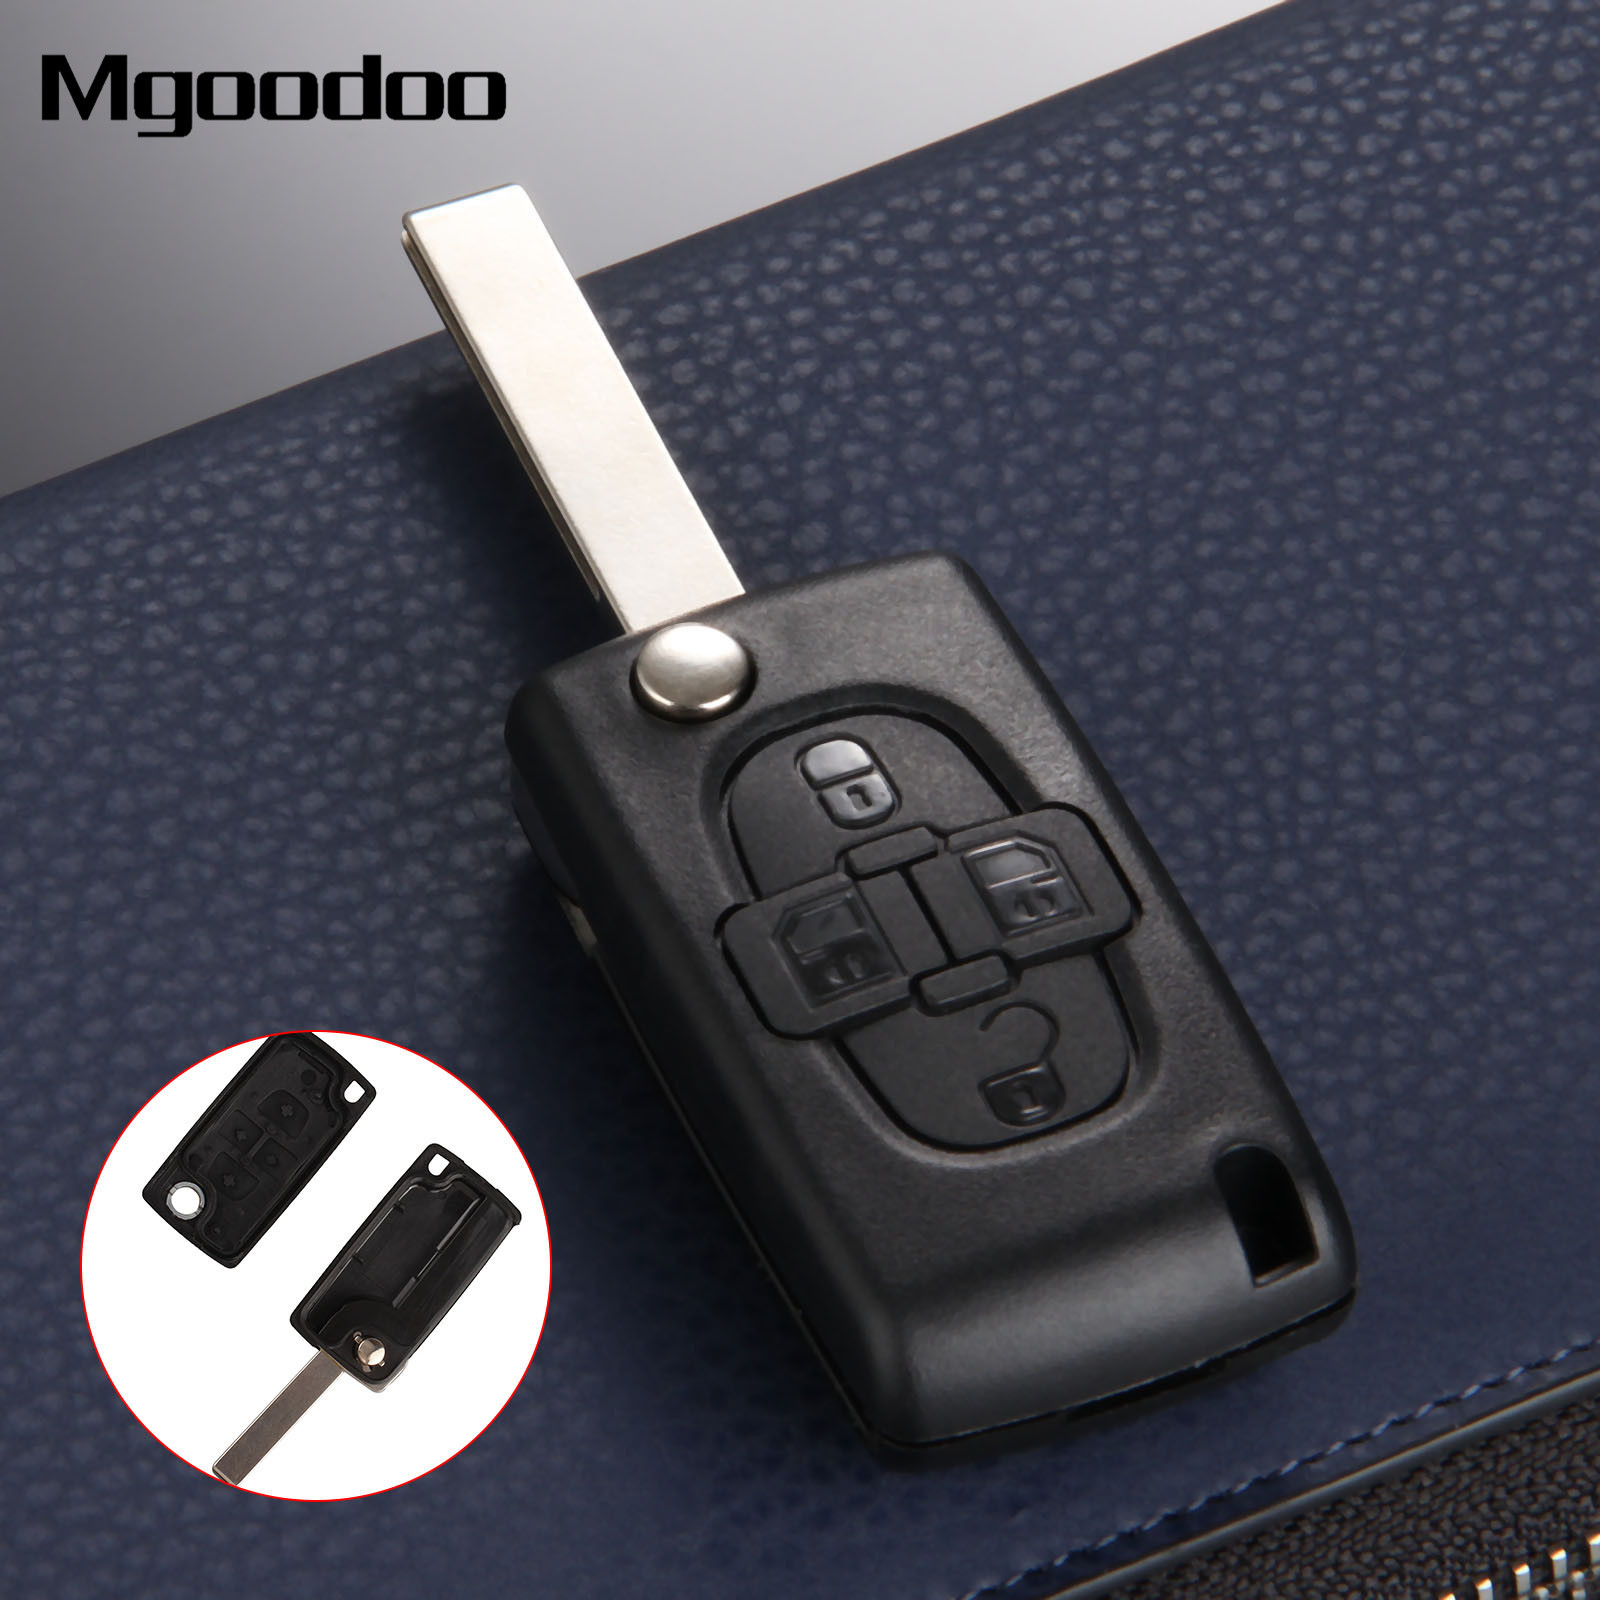 Mgoodoo Replacement Key Shell 4 Buttons Flip Folding Remote Case Fob Cover Blank Blade For Peugeot 1007 Citroen C8